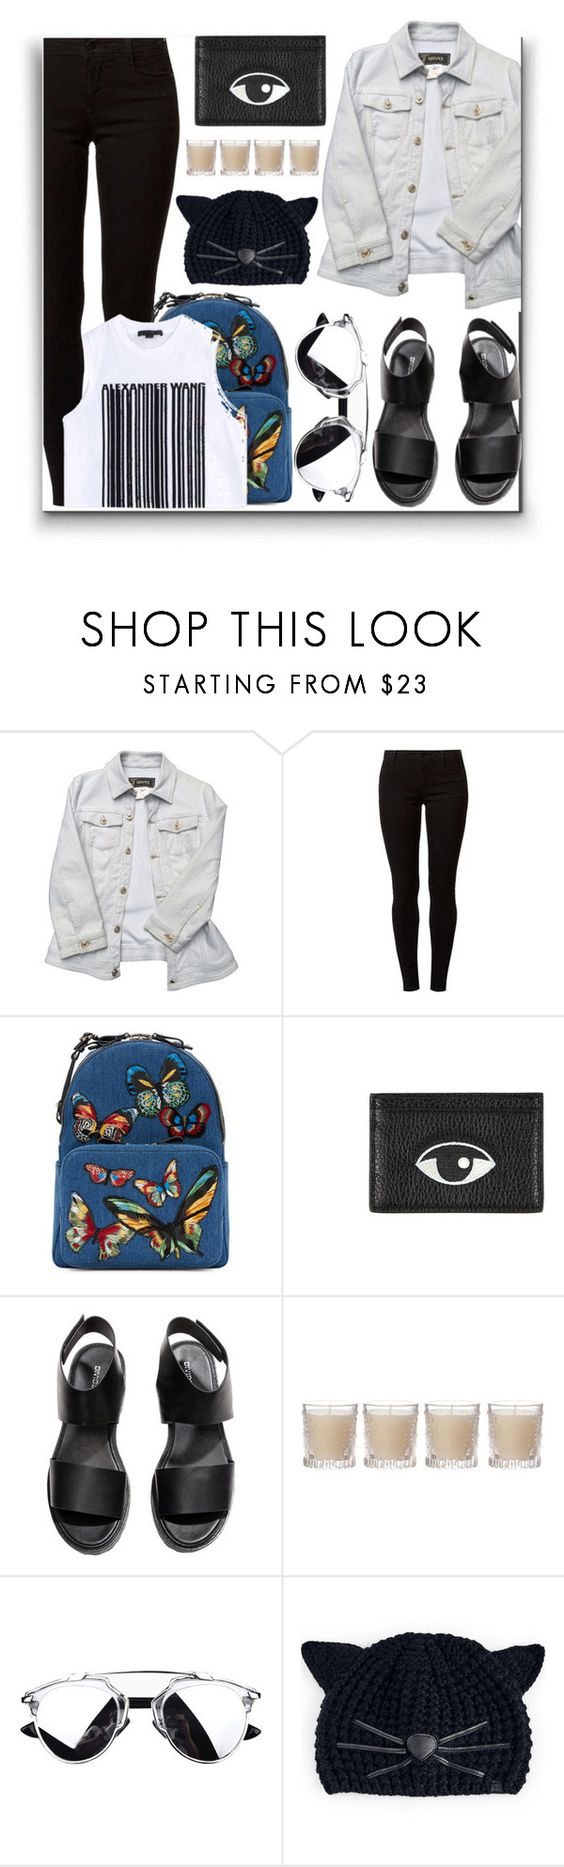 """""""Sin título #698"""" by teresapulido ❤ liked on Polyvore featuring Versace, Dorothy Perkins, Valentino, Kenzo, H&M, Shabby Chic, Karl Lagerfeld and Alexander Wang"""